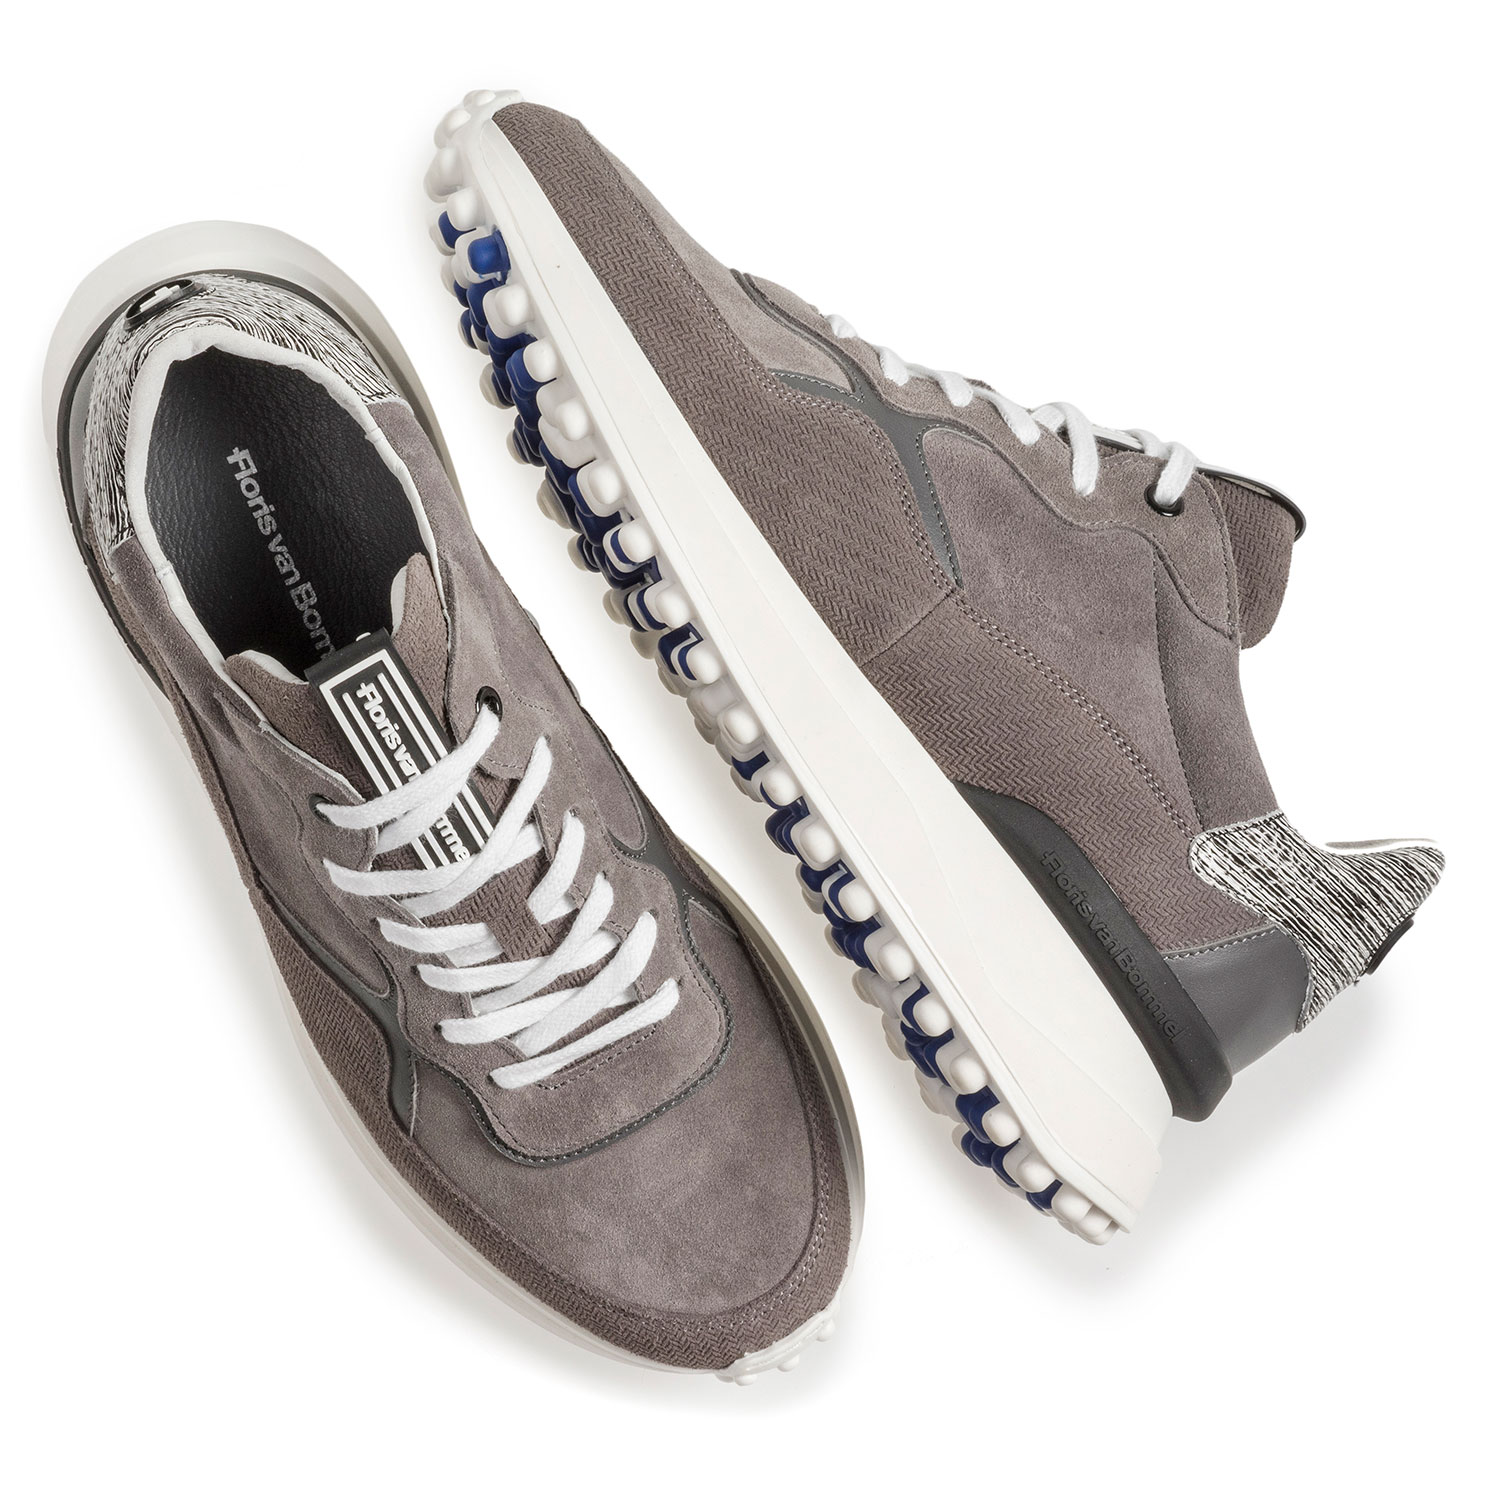 16301/16 - Grey suede leather sneaker with print